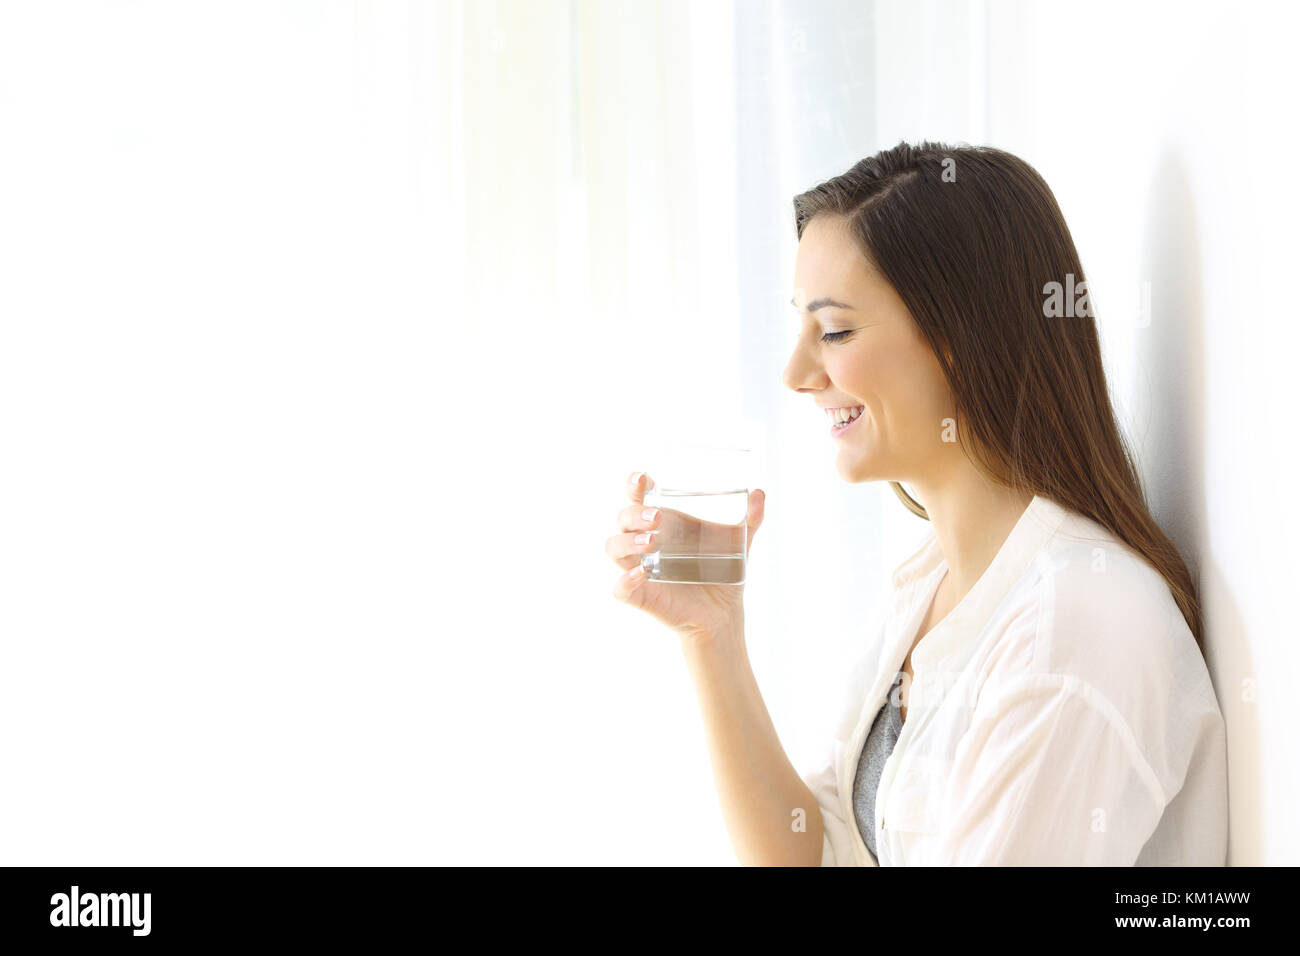 Side view portrait of a happy woman holding a glass of water isolated on white at side - Stock Image